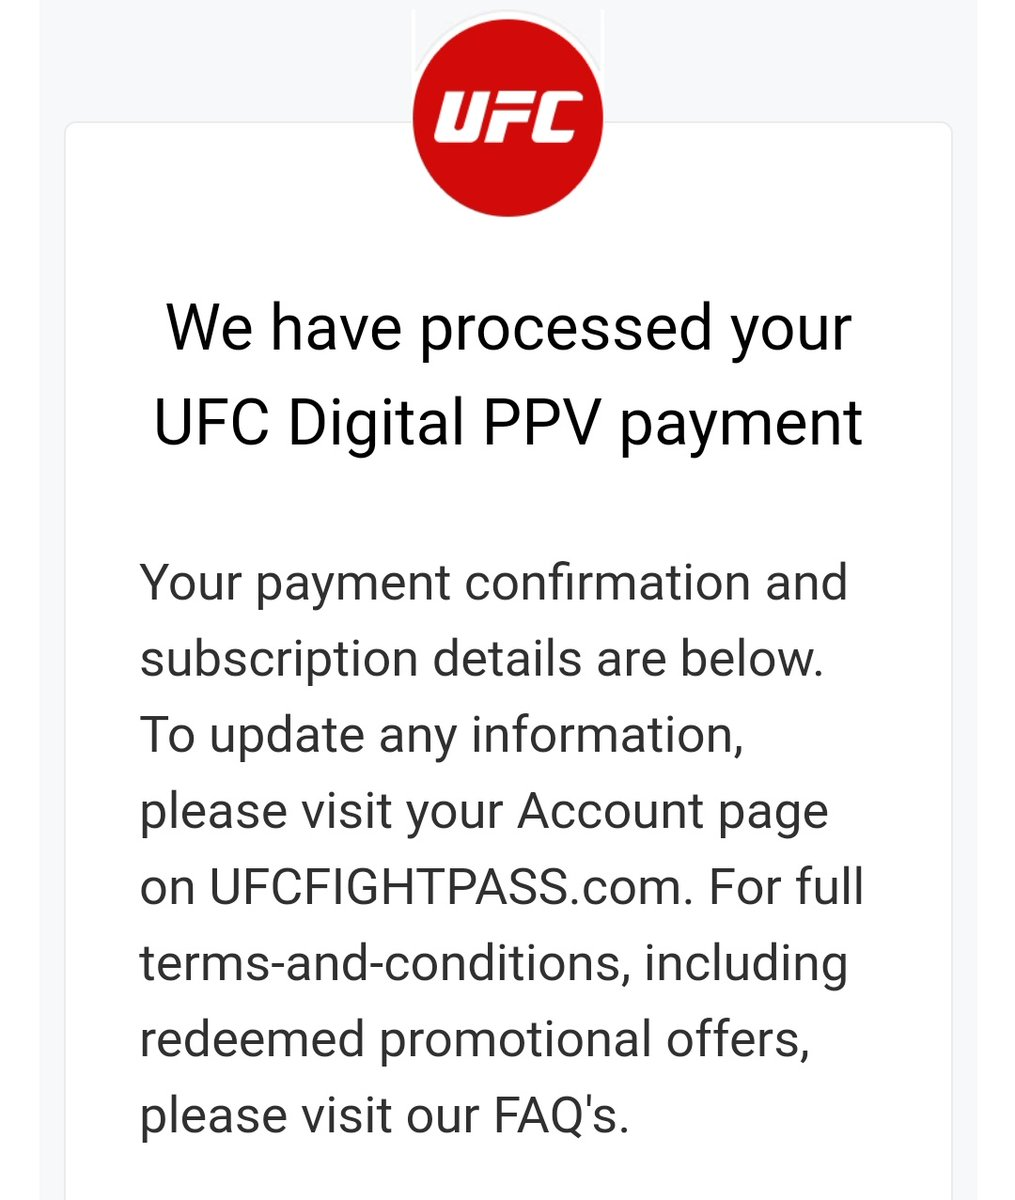 I get most people may not have the financial means to buy it, but this sport/company has allowed me to make a 2nd income off of their product. Heck, may even be my primary source of income shortly.  Gotta pay it back a bit.   I'm stoked!   #UFC257